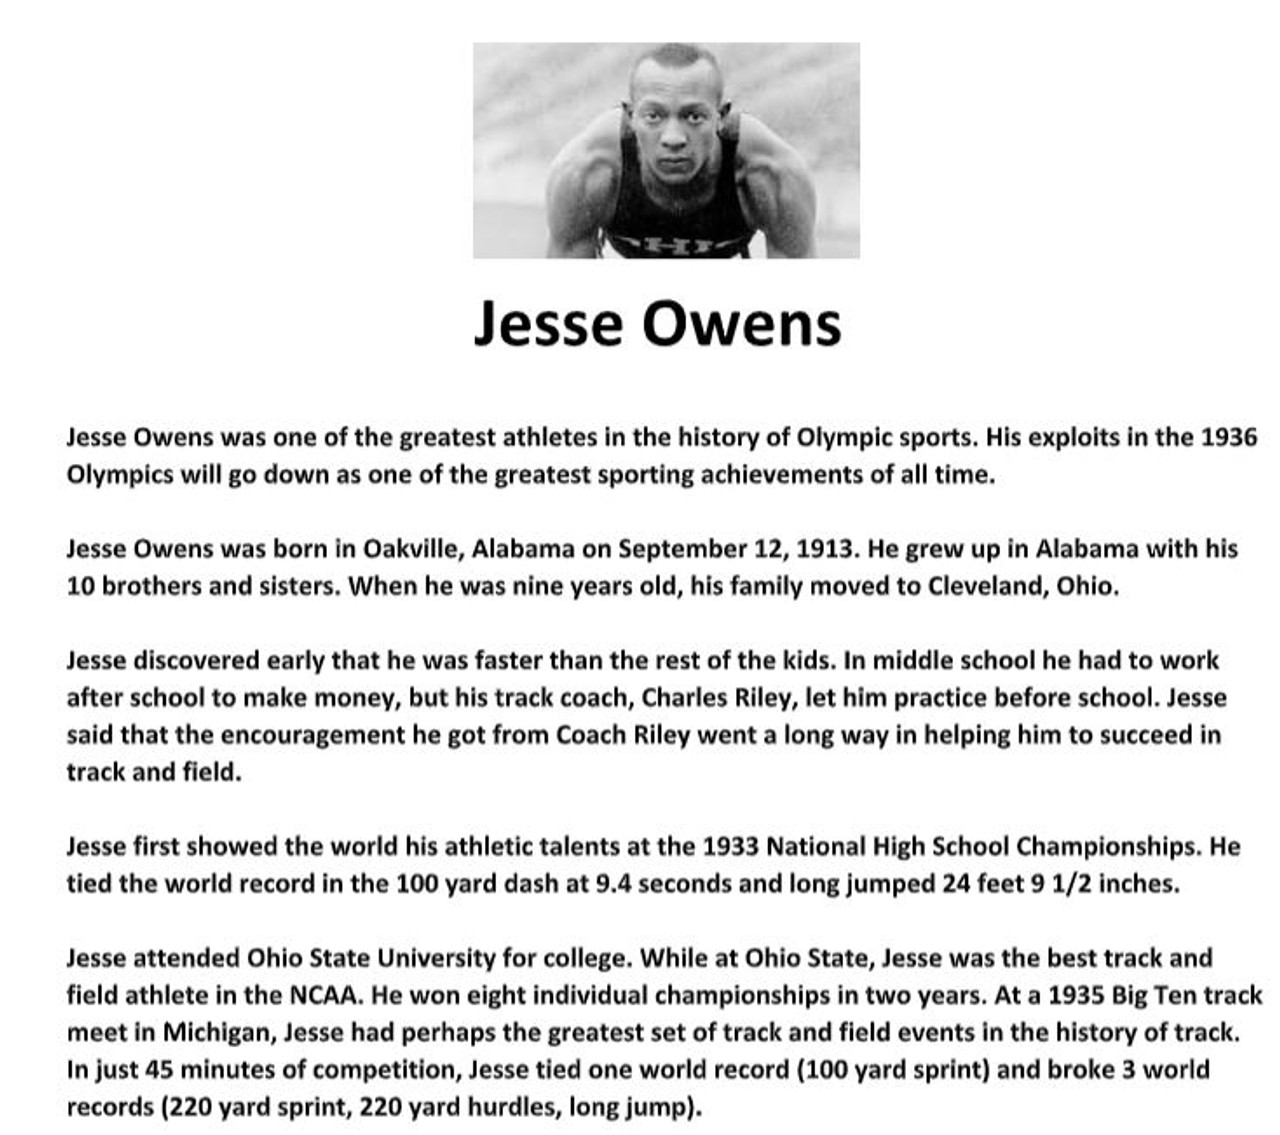 hight resolution of Jesse Owens Biography Article and Assignment Worksheet - Amped Up Learning